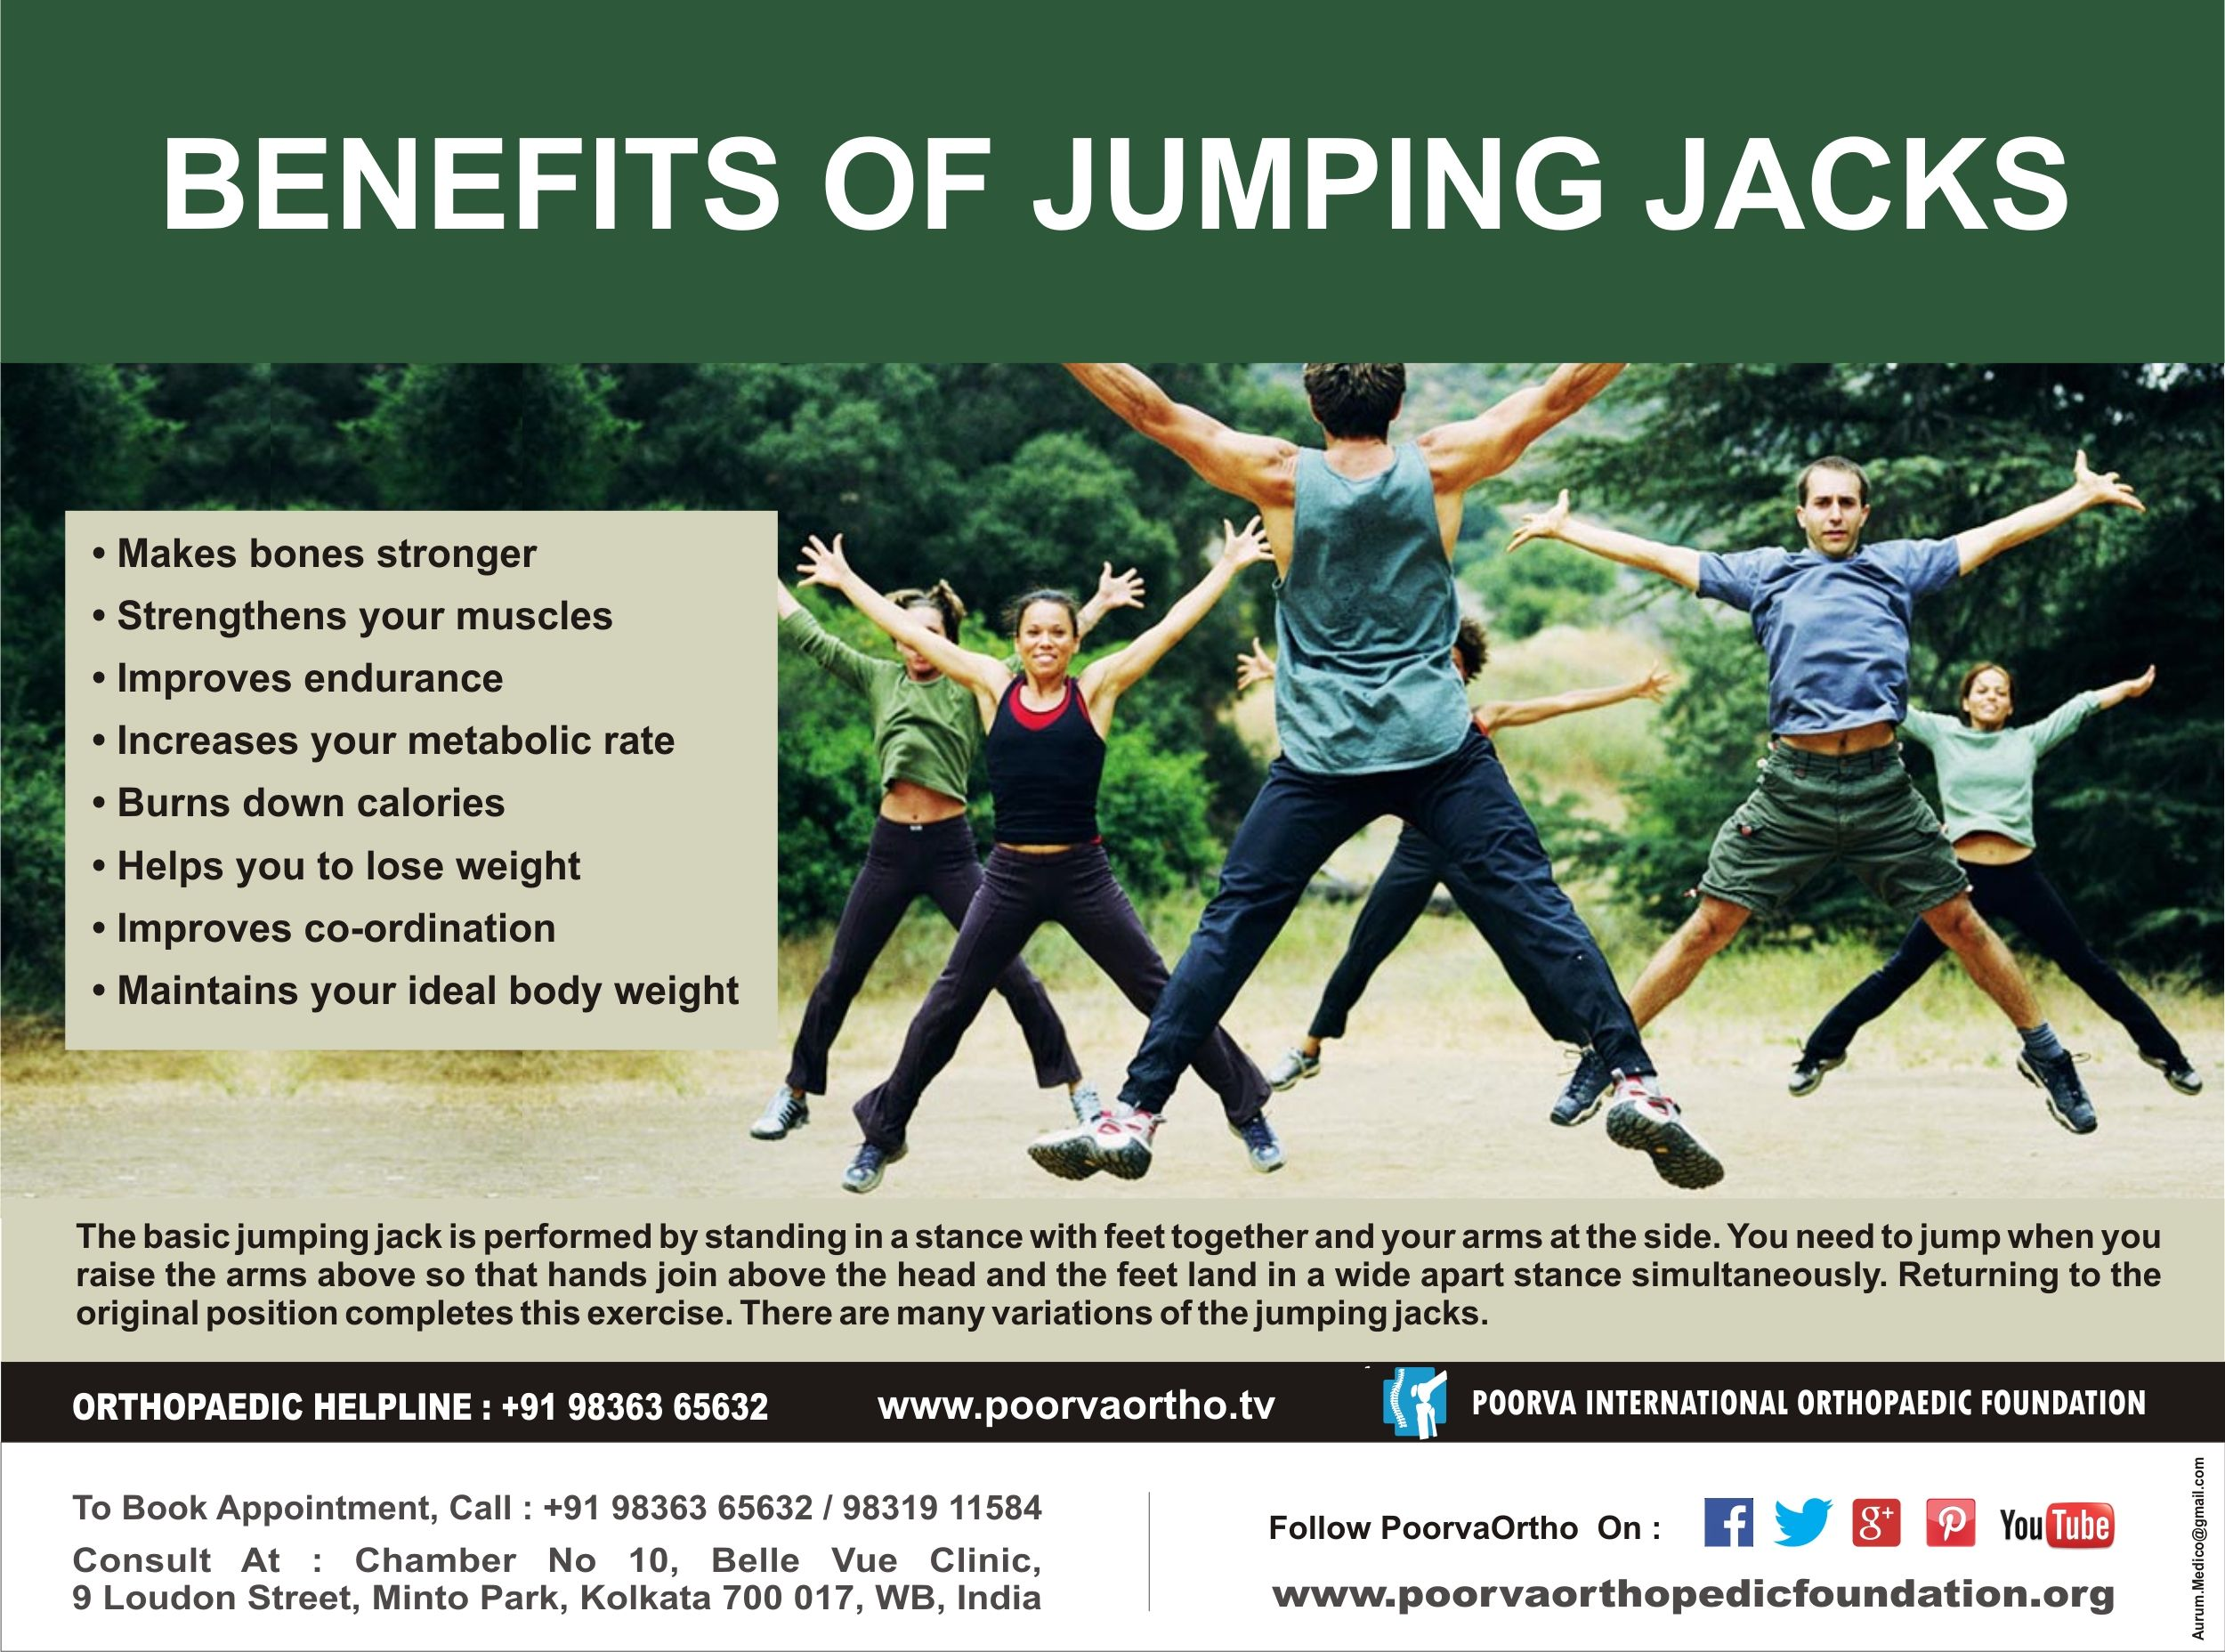 Do You Know The Benefits Of Jumping Jacks Jumping Jacks Benefits Ideal Body Weight Improve Endurance